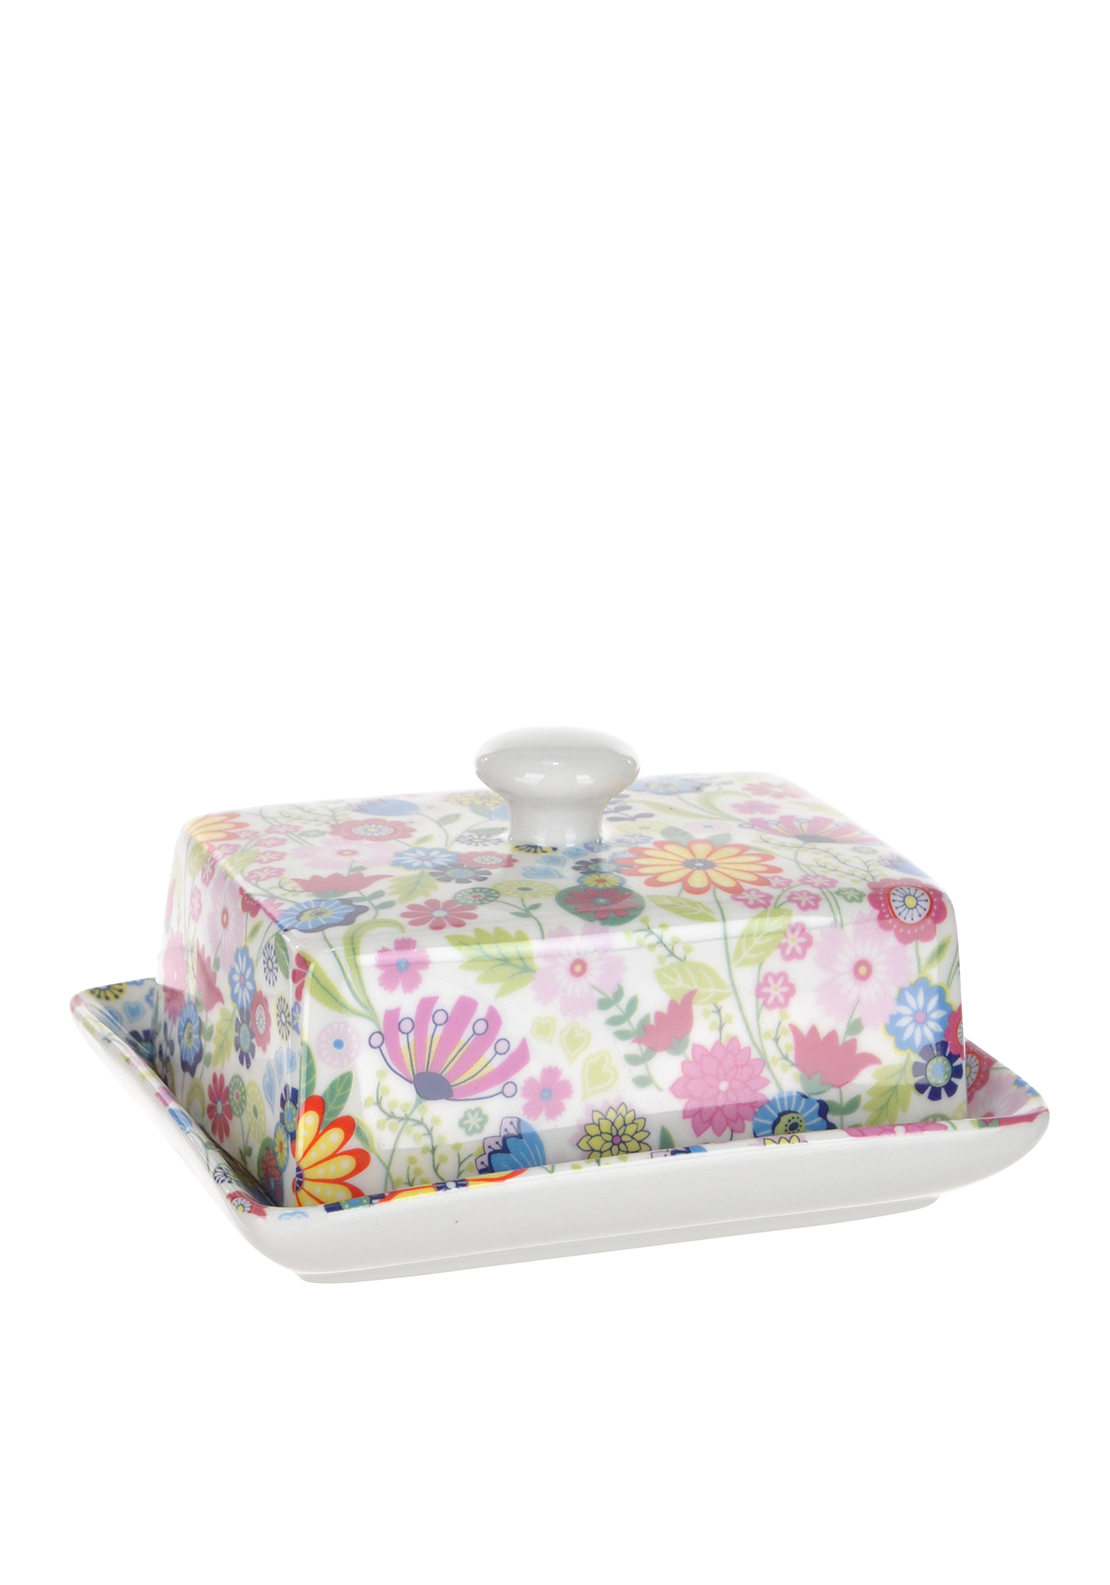 Shannon Bridge Ireland Ditsy Flowery Butter Dish, White/Multi floral Design